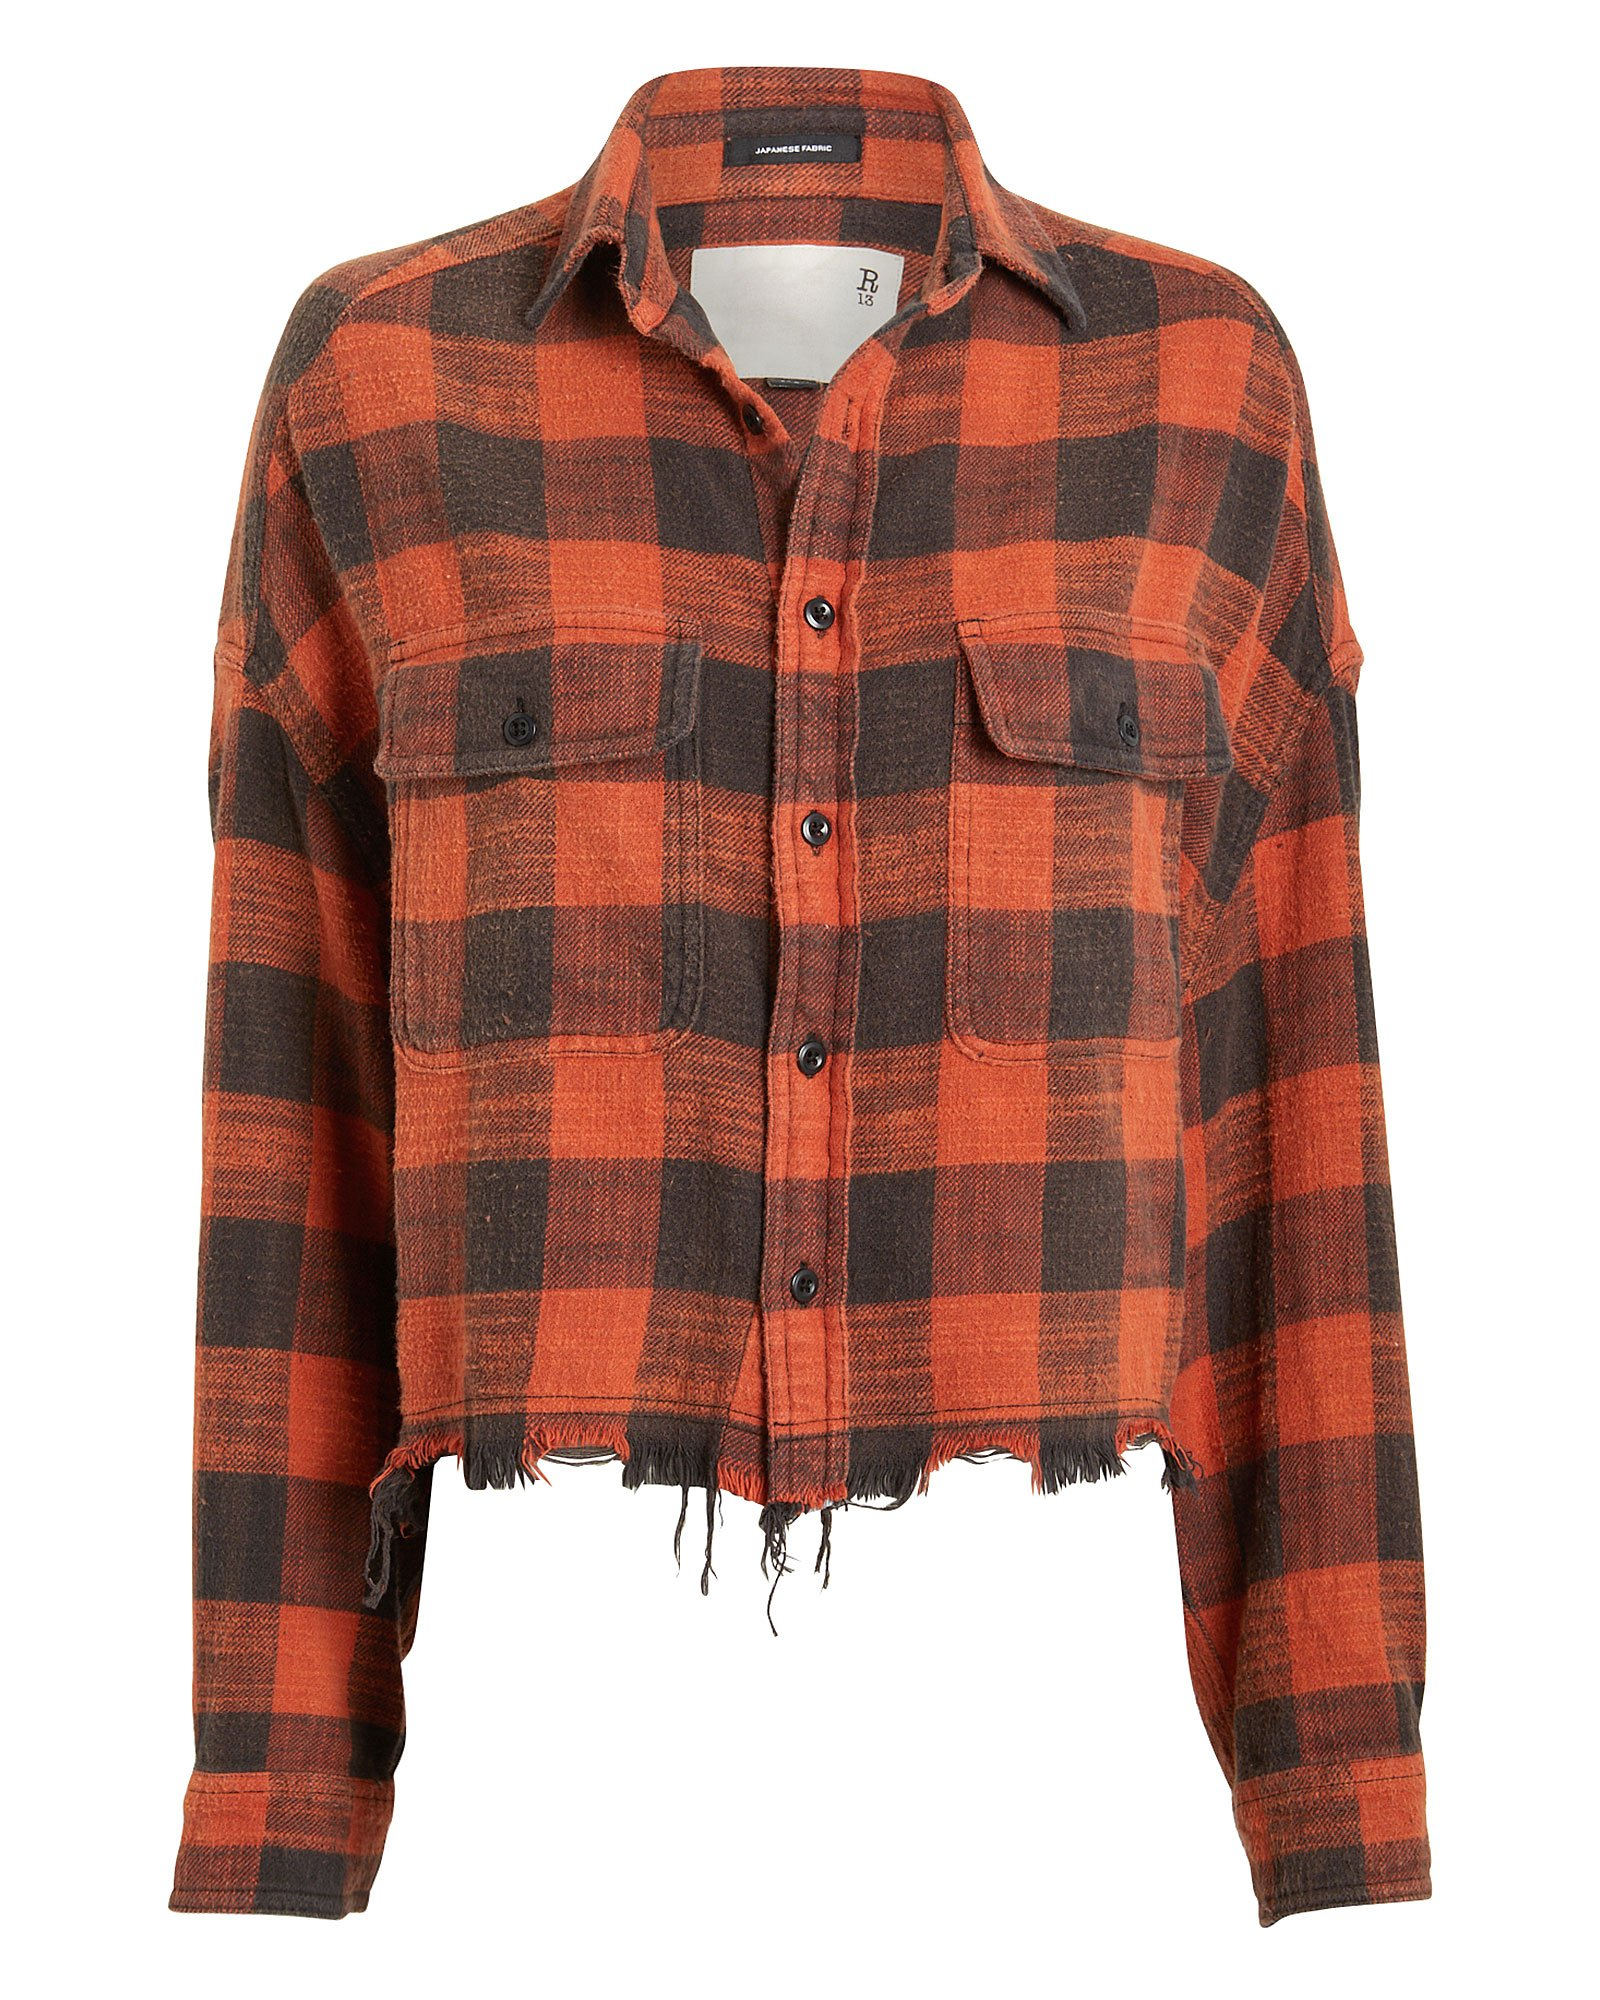 Cropped Plaid Work Shirt by R13